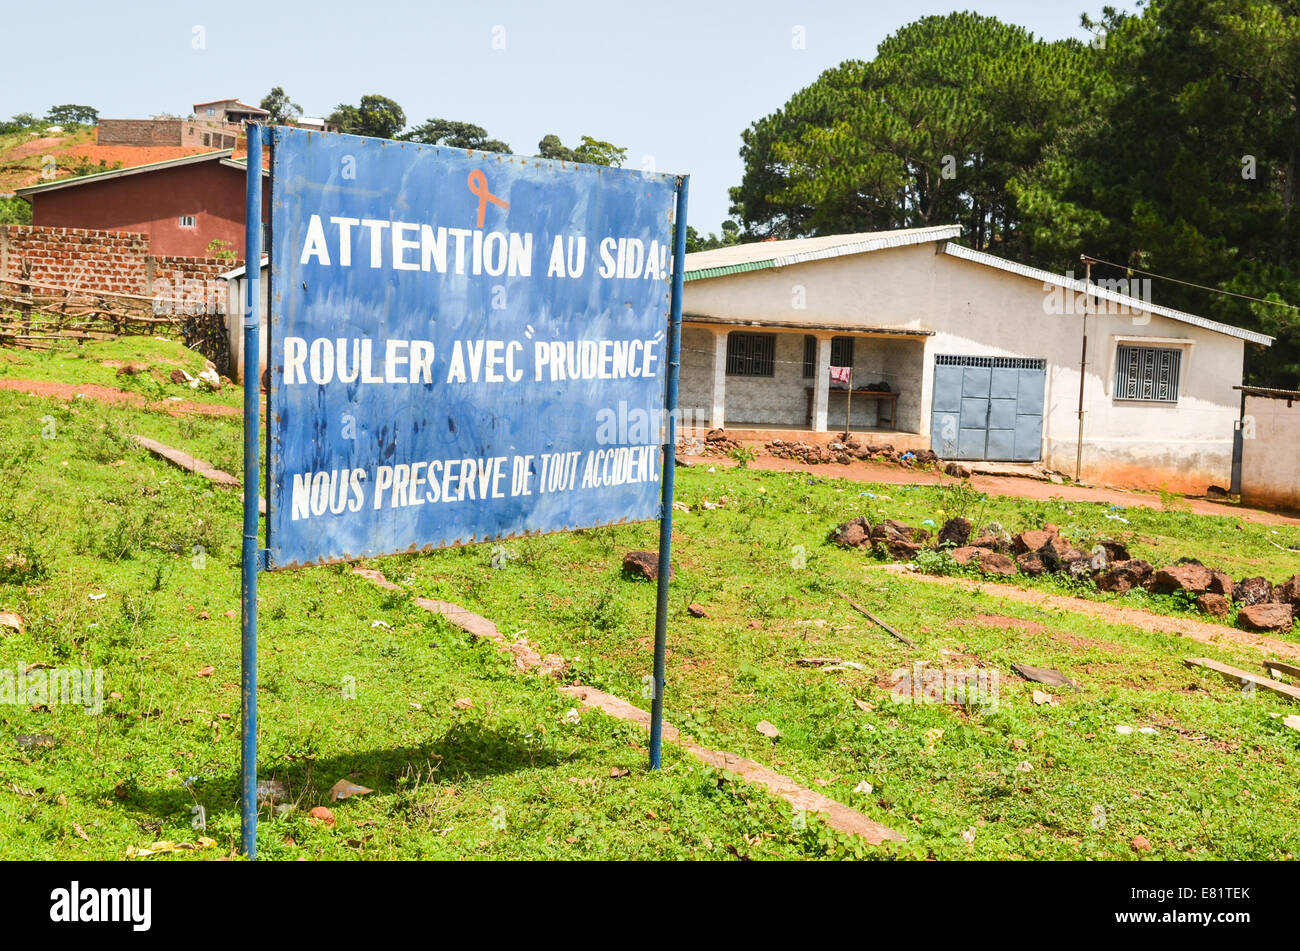 A road sign in Guinea reading in French: 'Be careful with AIDS - Driving safely preserves us from all accidents' - Stock Image